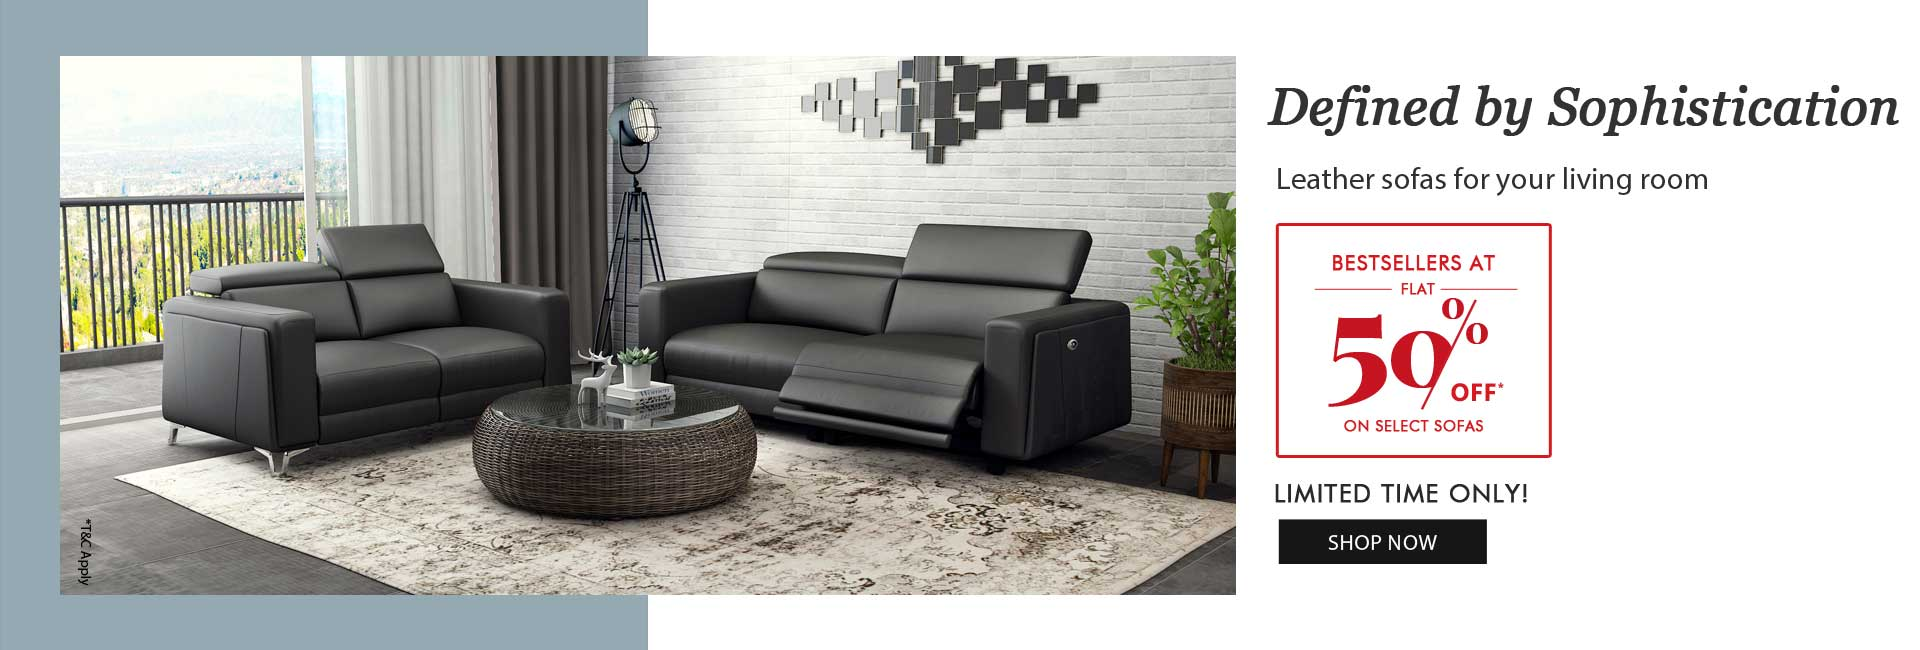 Flat 50% off on selected Sofas